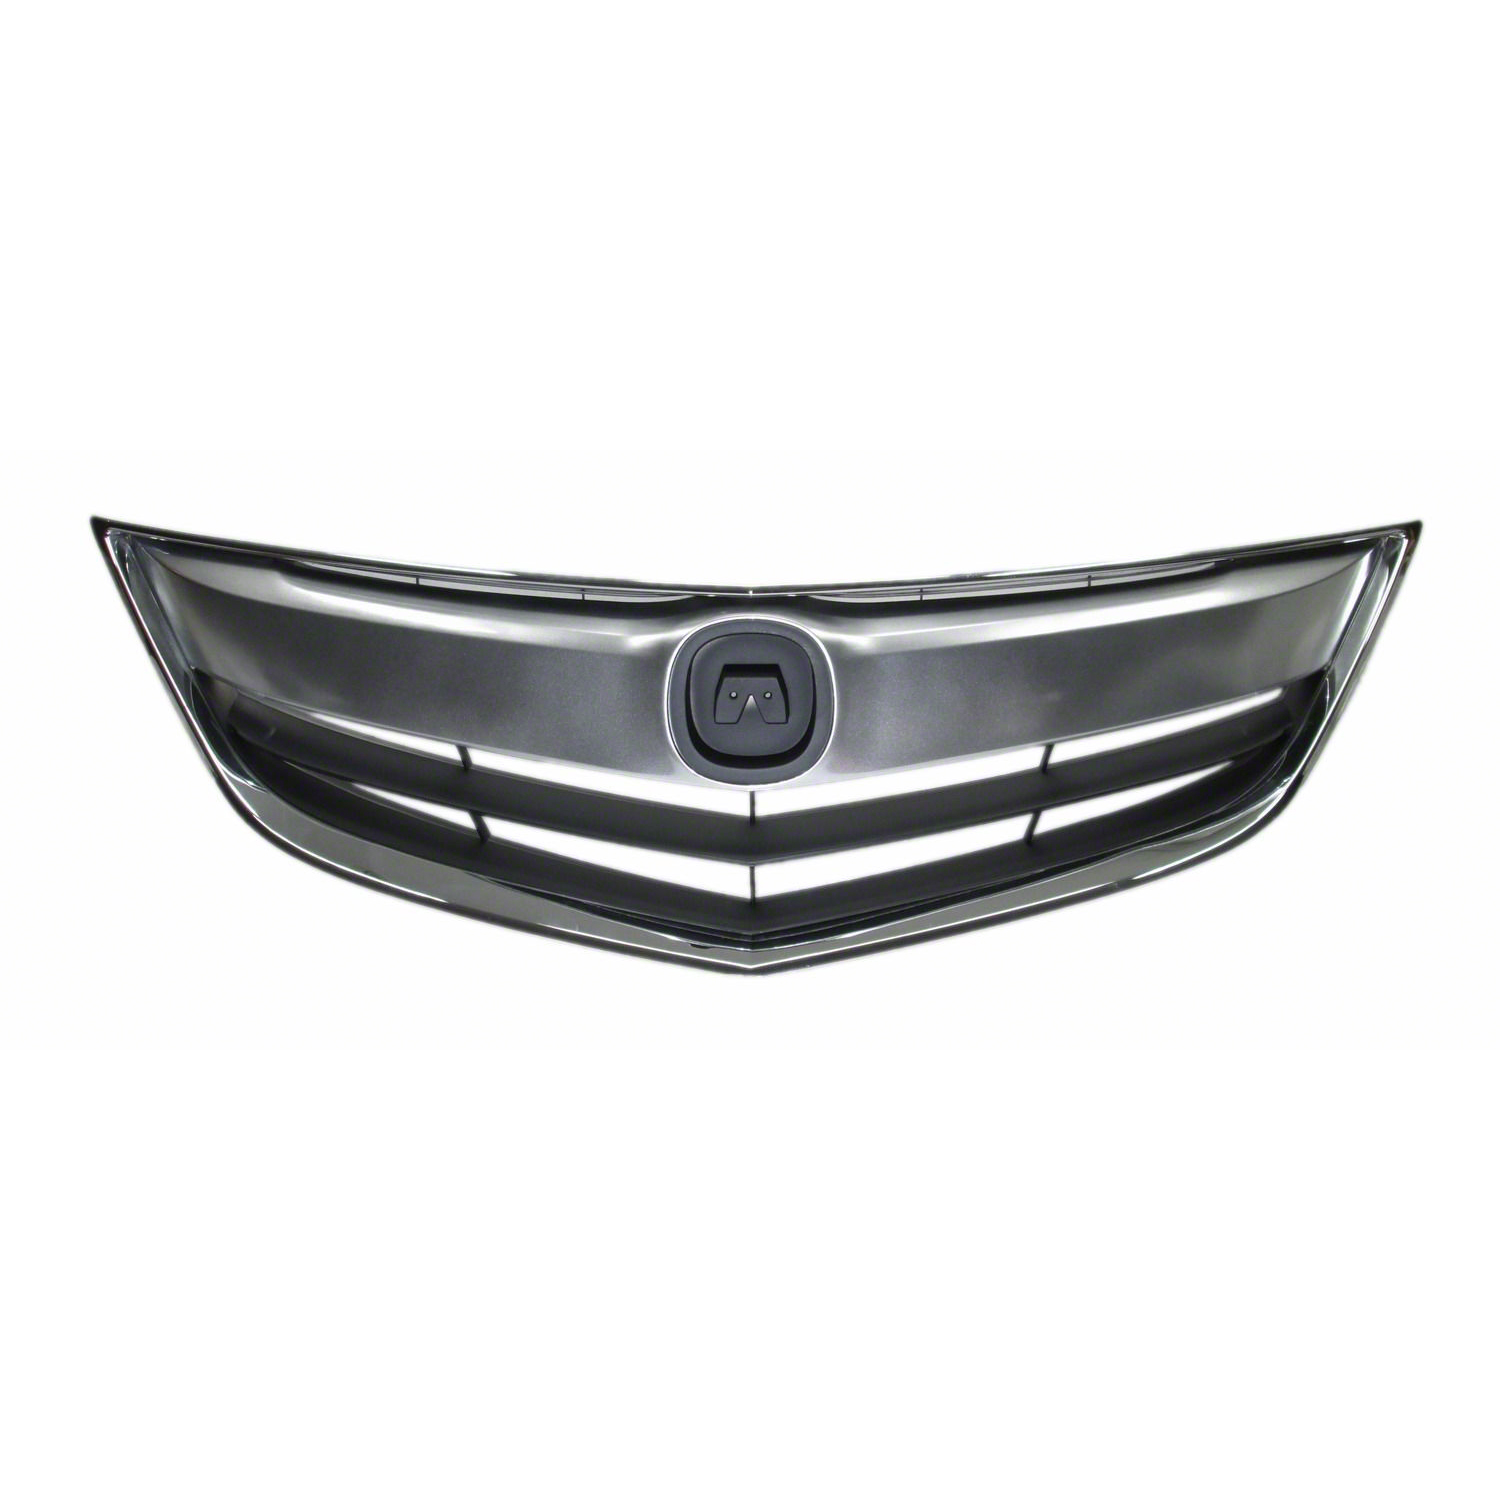 CPP Grill Assembly For 2013-2015 Acura ILX Grille